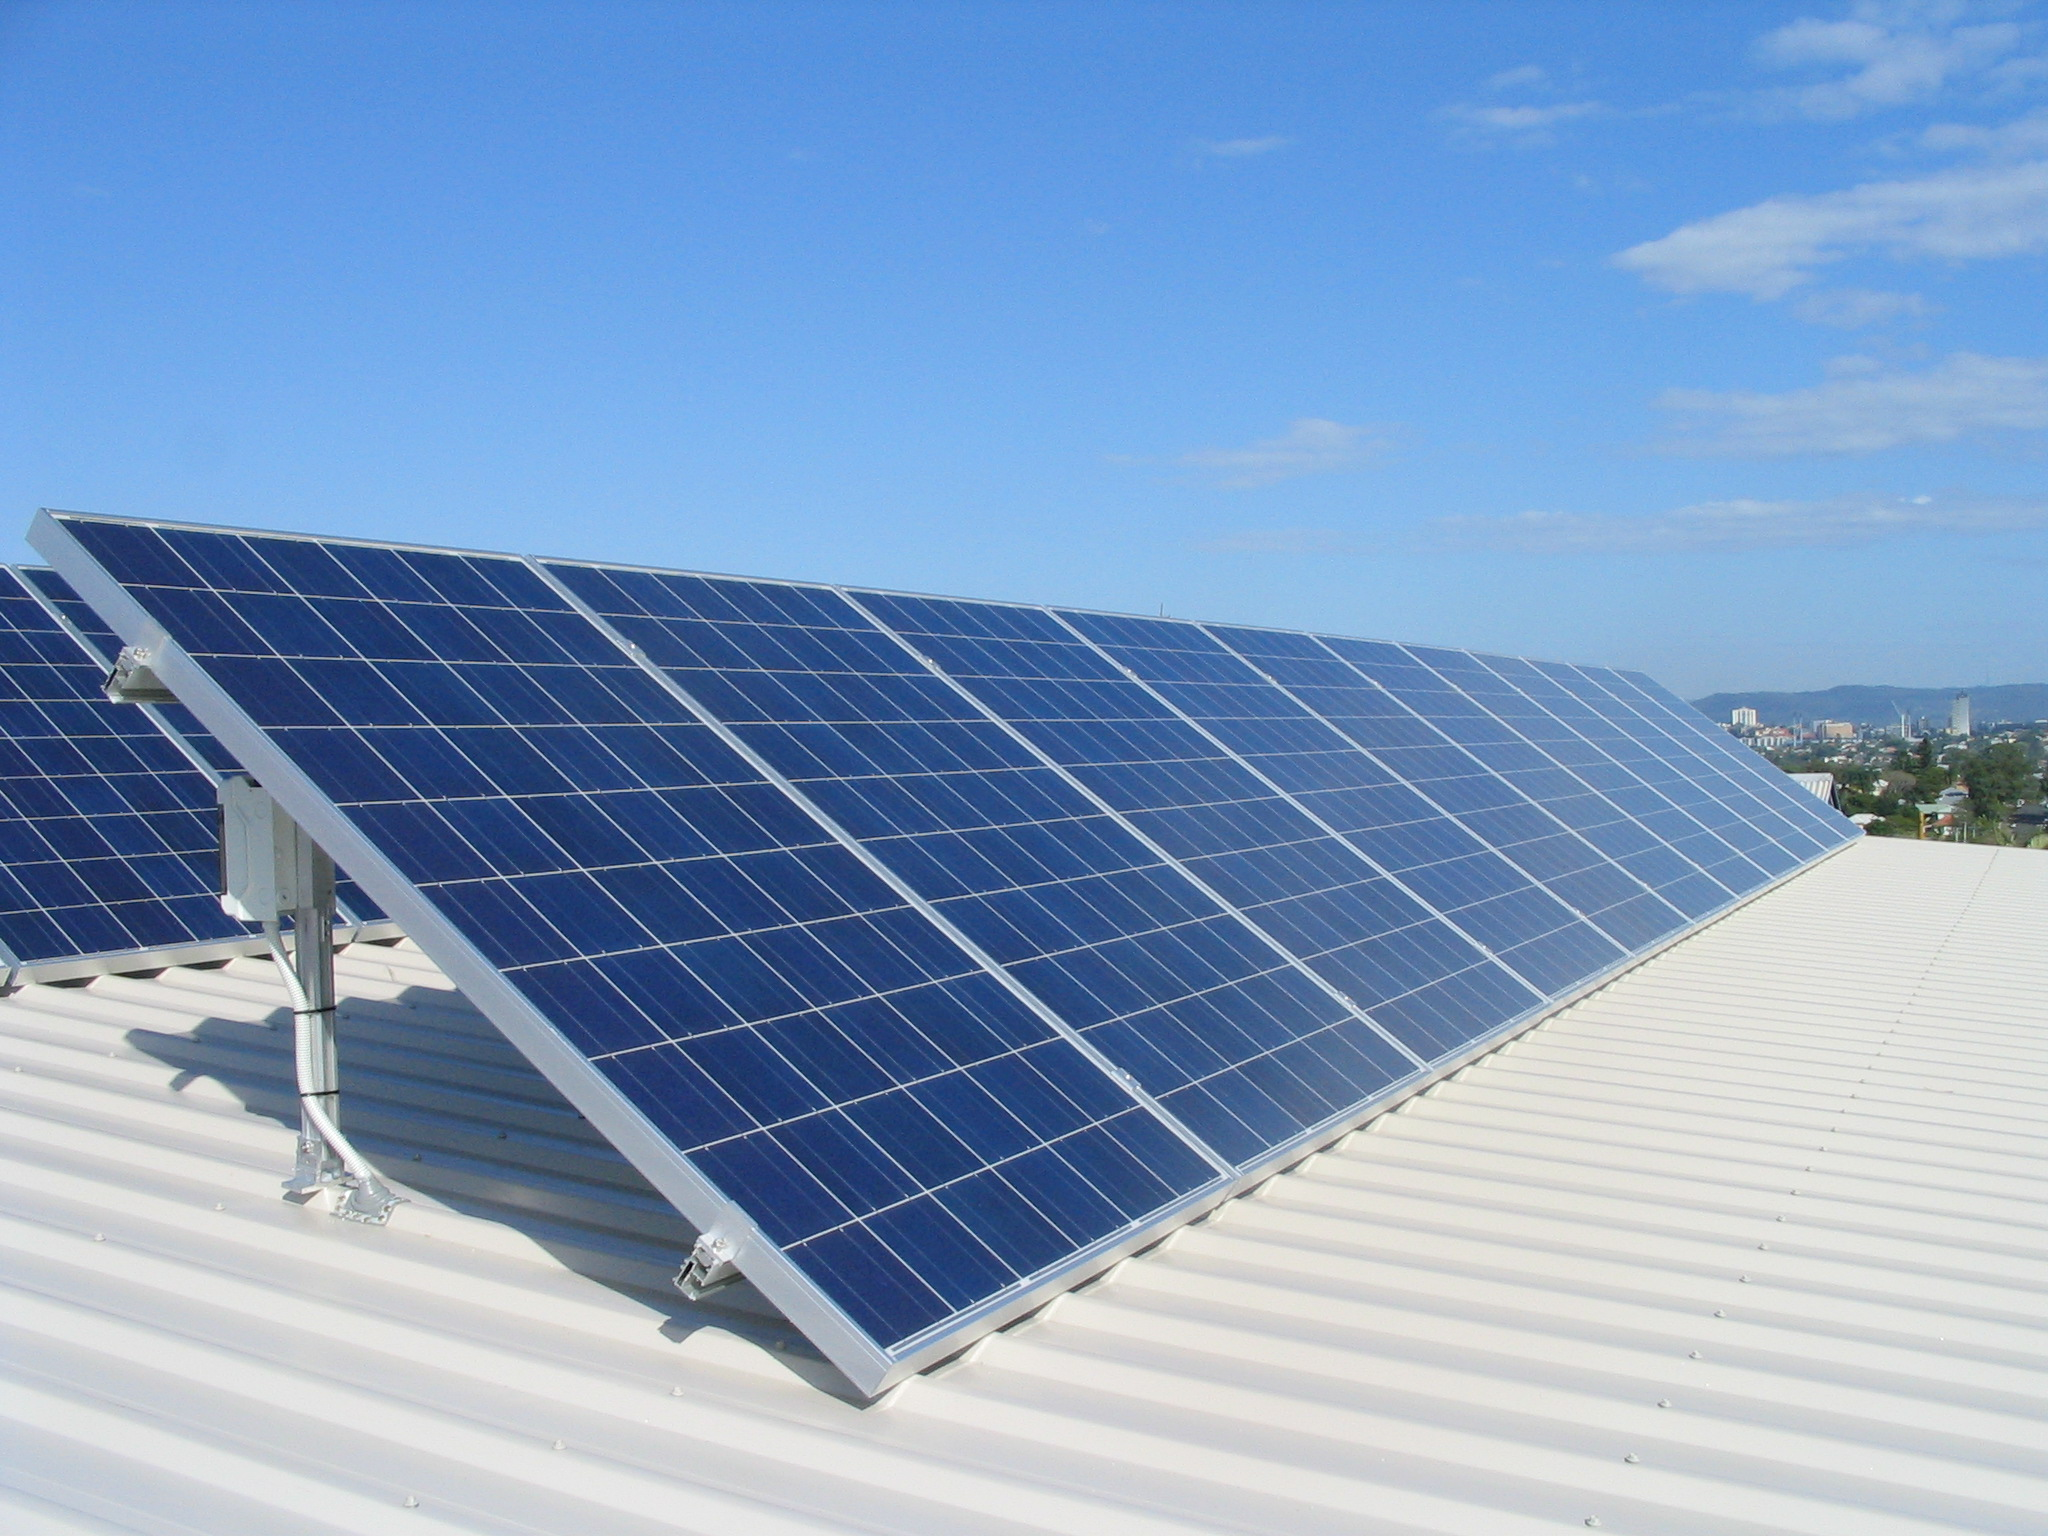 Cost to install solar panels on roof - Solar Panels Installation